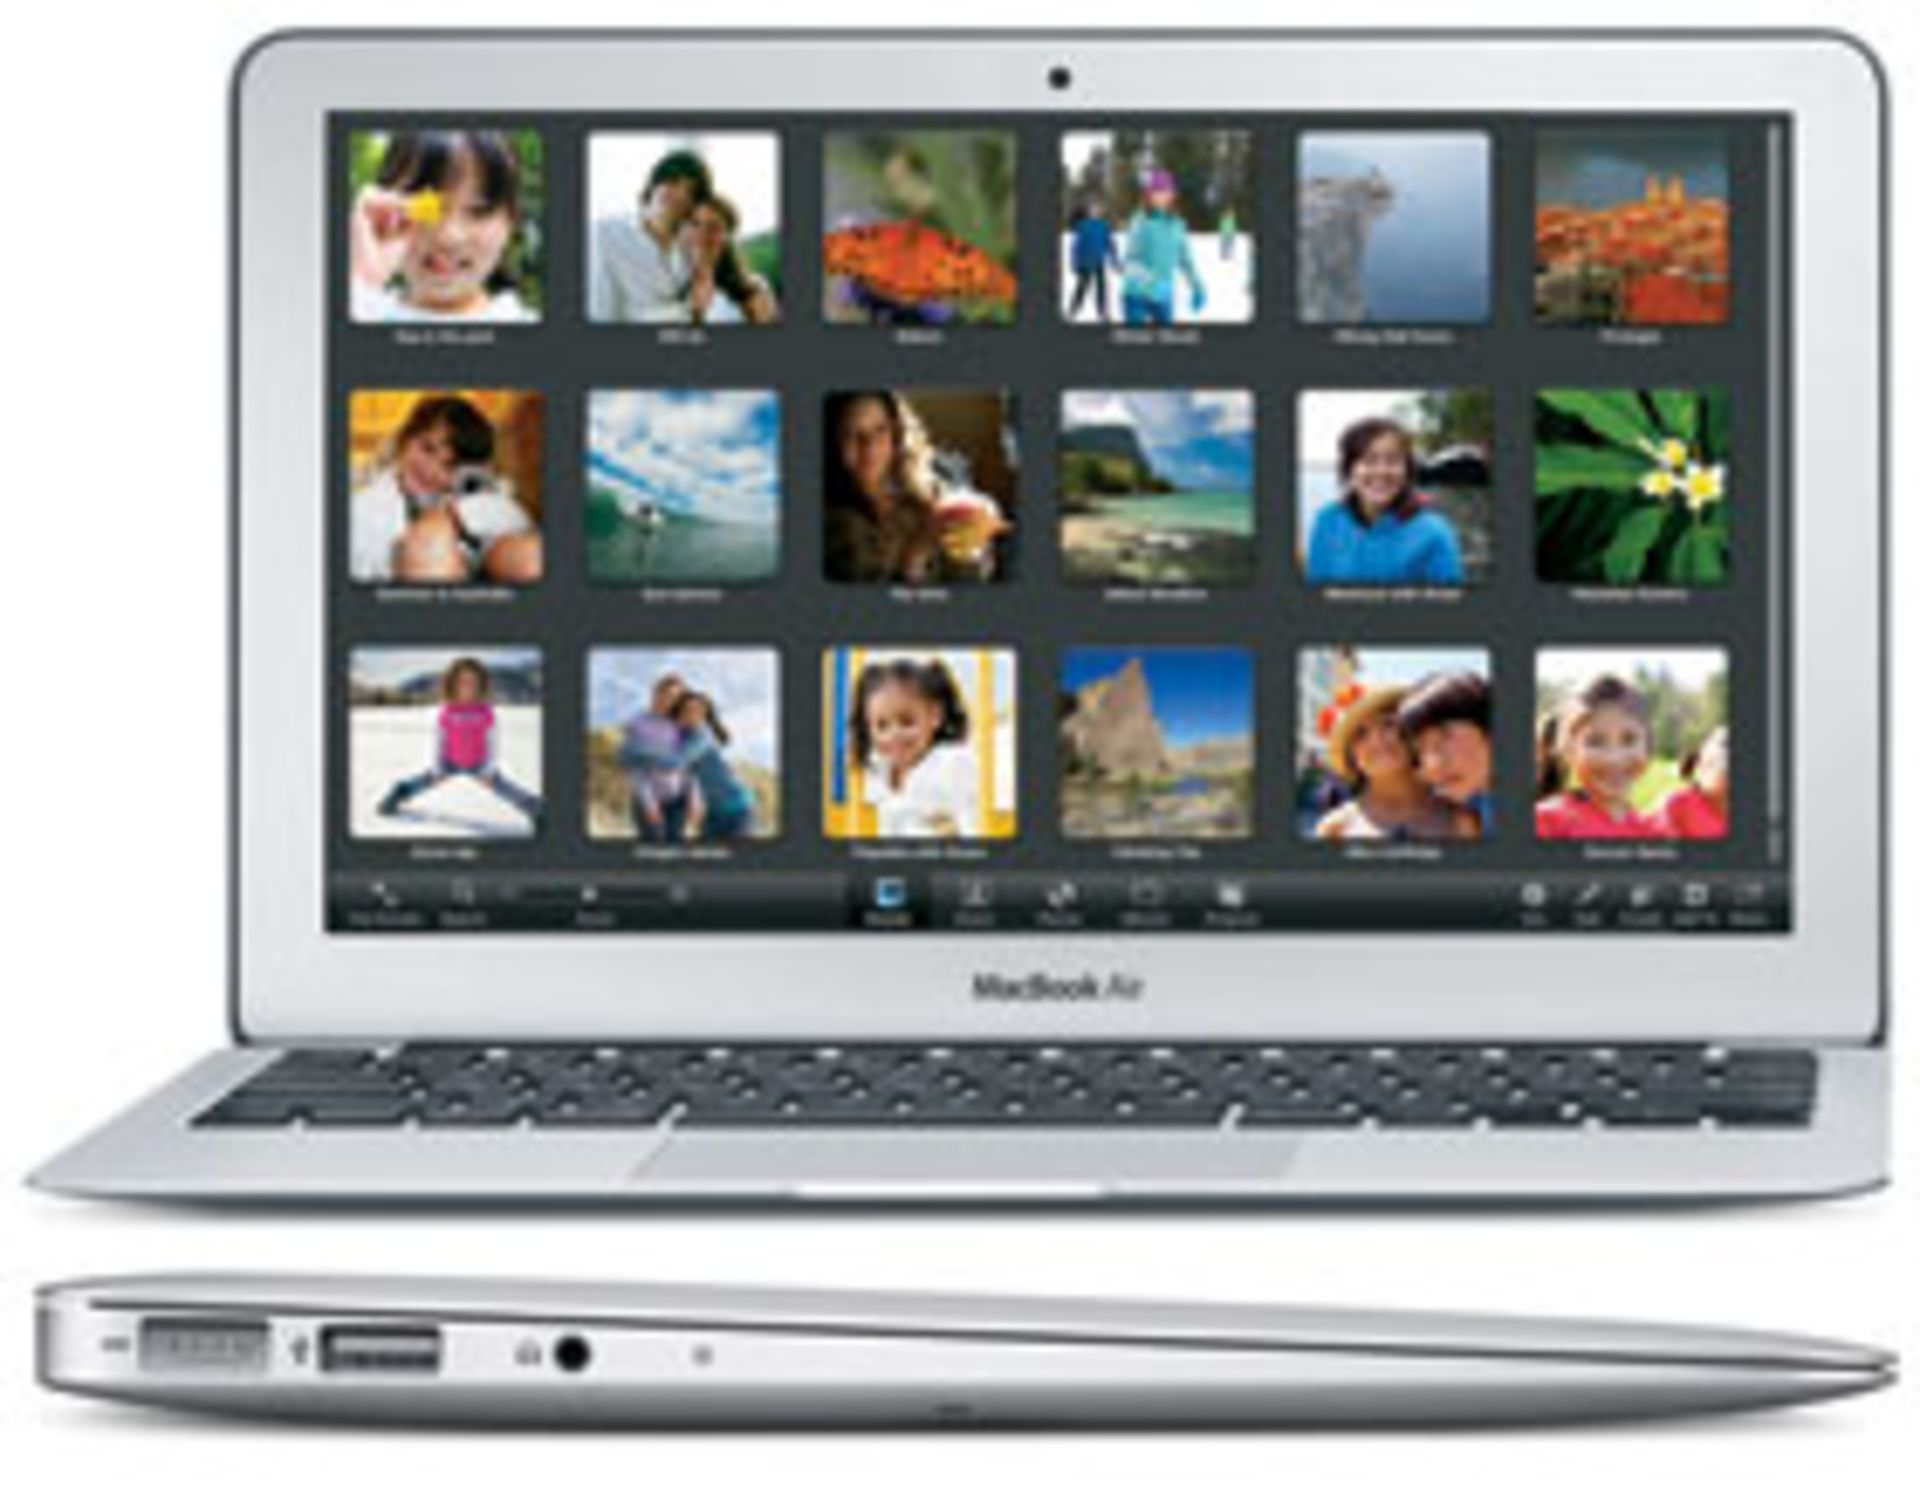 Lot 60049 - V Grade B Macbook Air 11.6 Inch Core 2 Duo - 64GB SSD - A1370 - Available Approx 7 Working Days